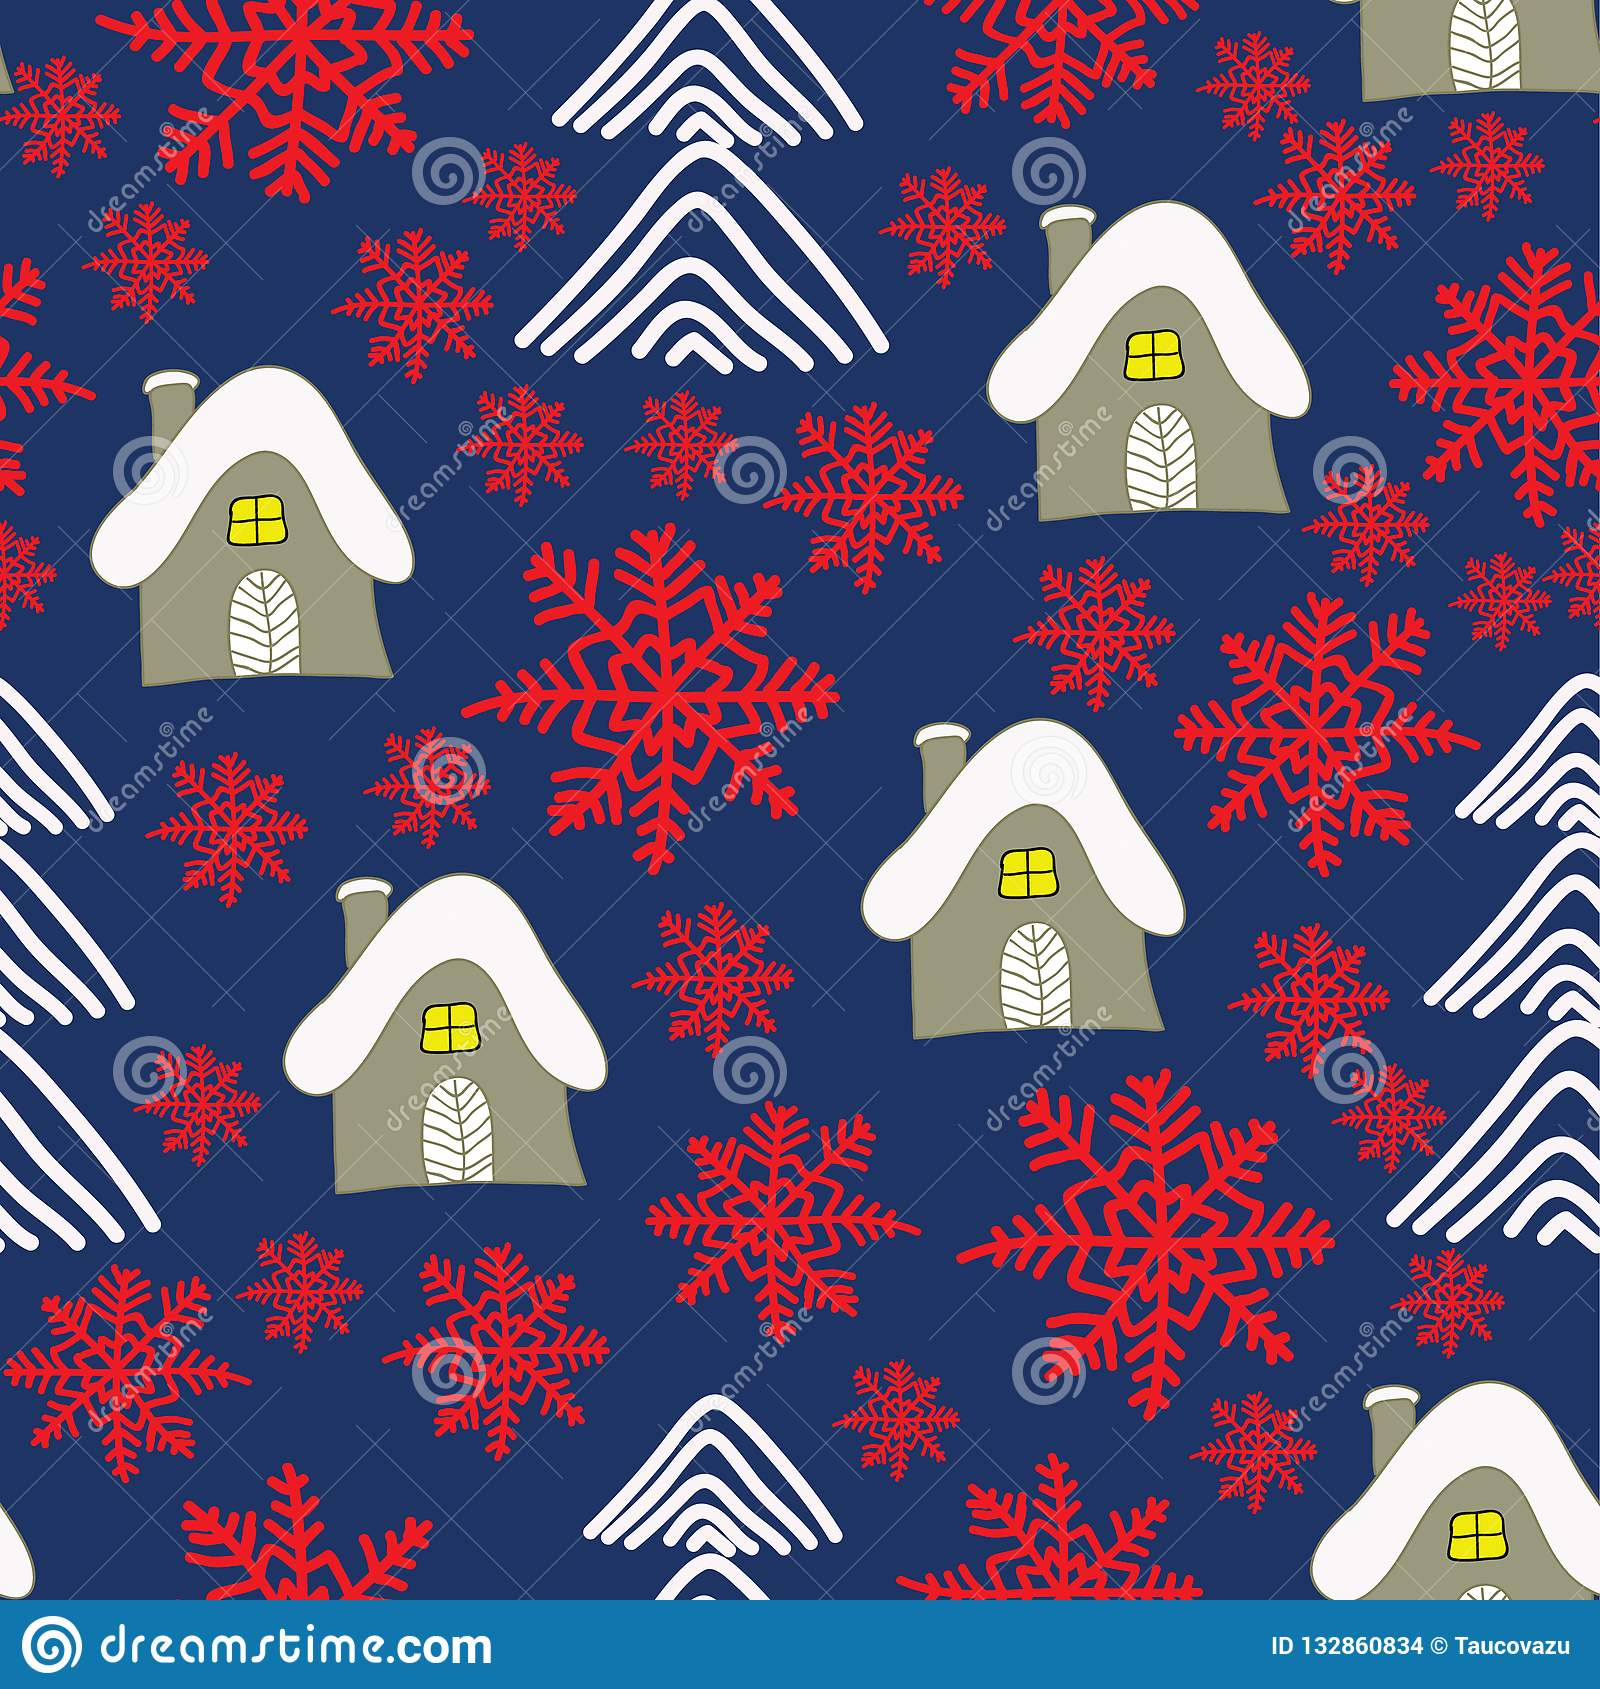 Winter landscape with cottage, red sowflakes and christmas trees. Christmas background